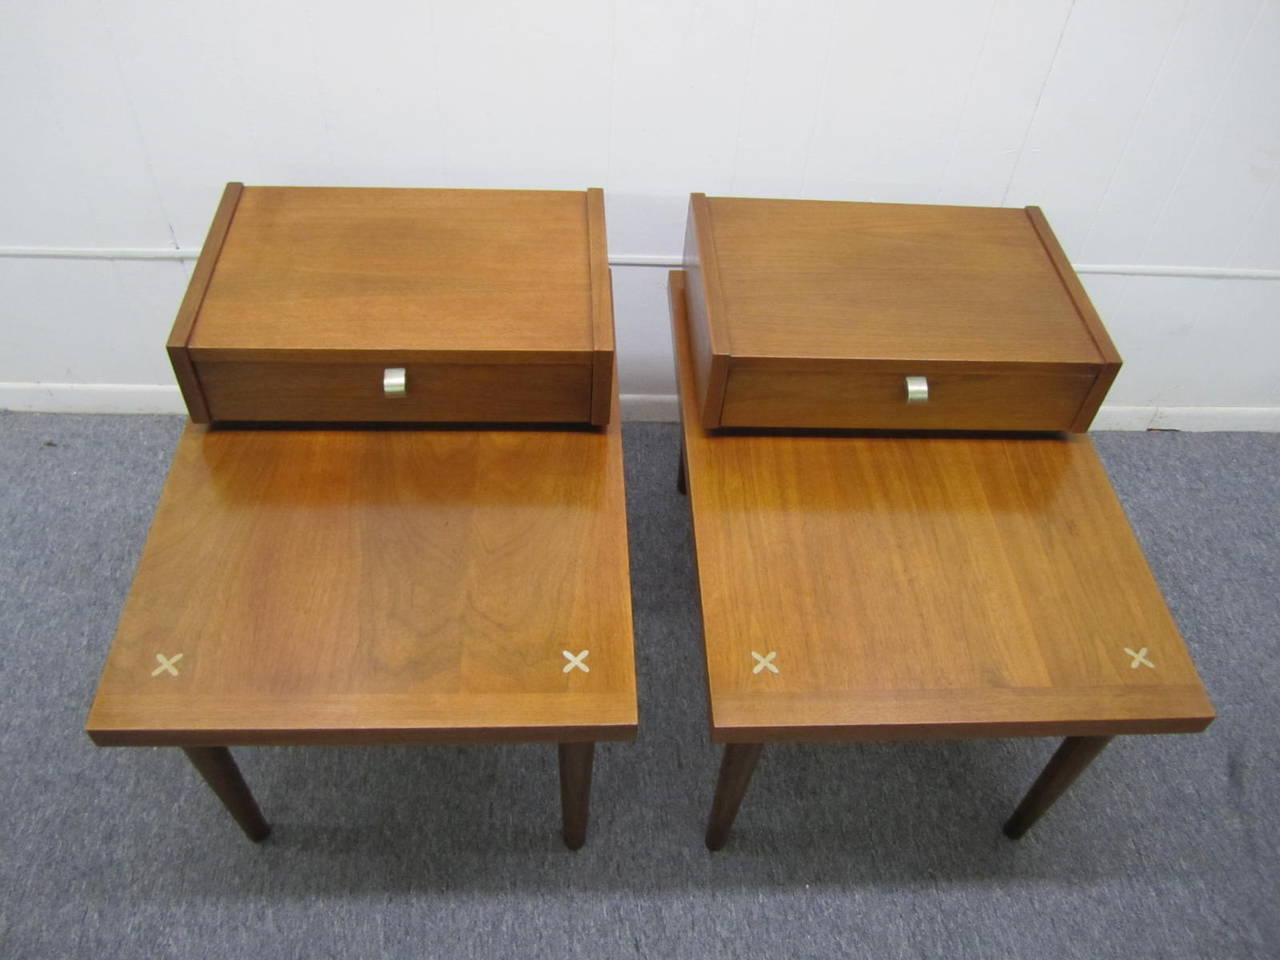 de67c88d53eb Handsome pair of American of Martinsville walnut step end tables.  Manufactured by American of Martinsville